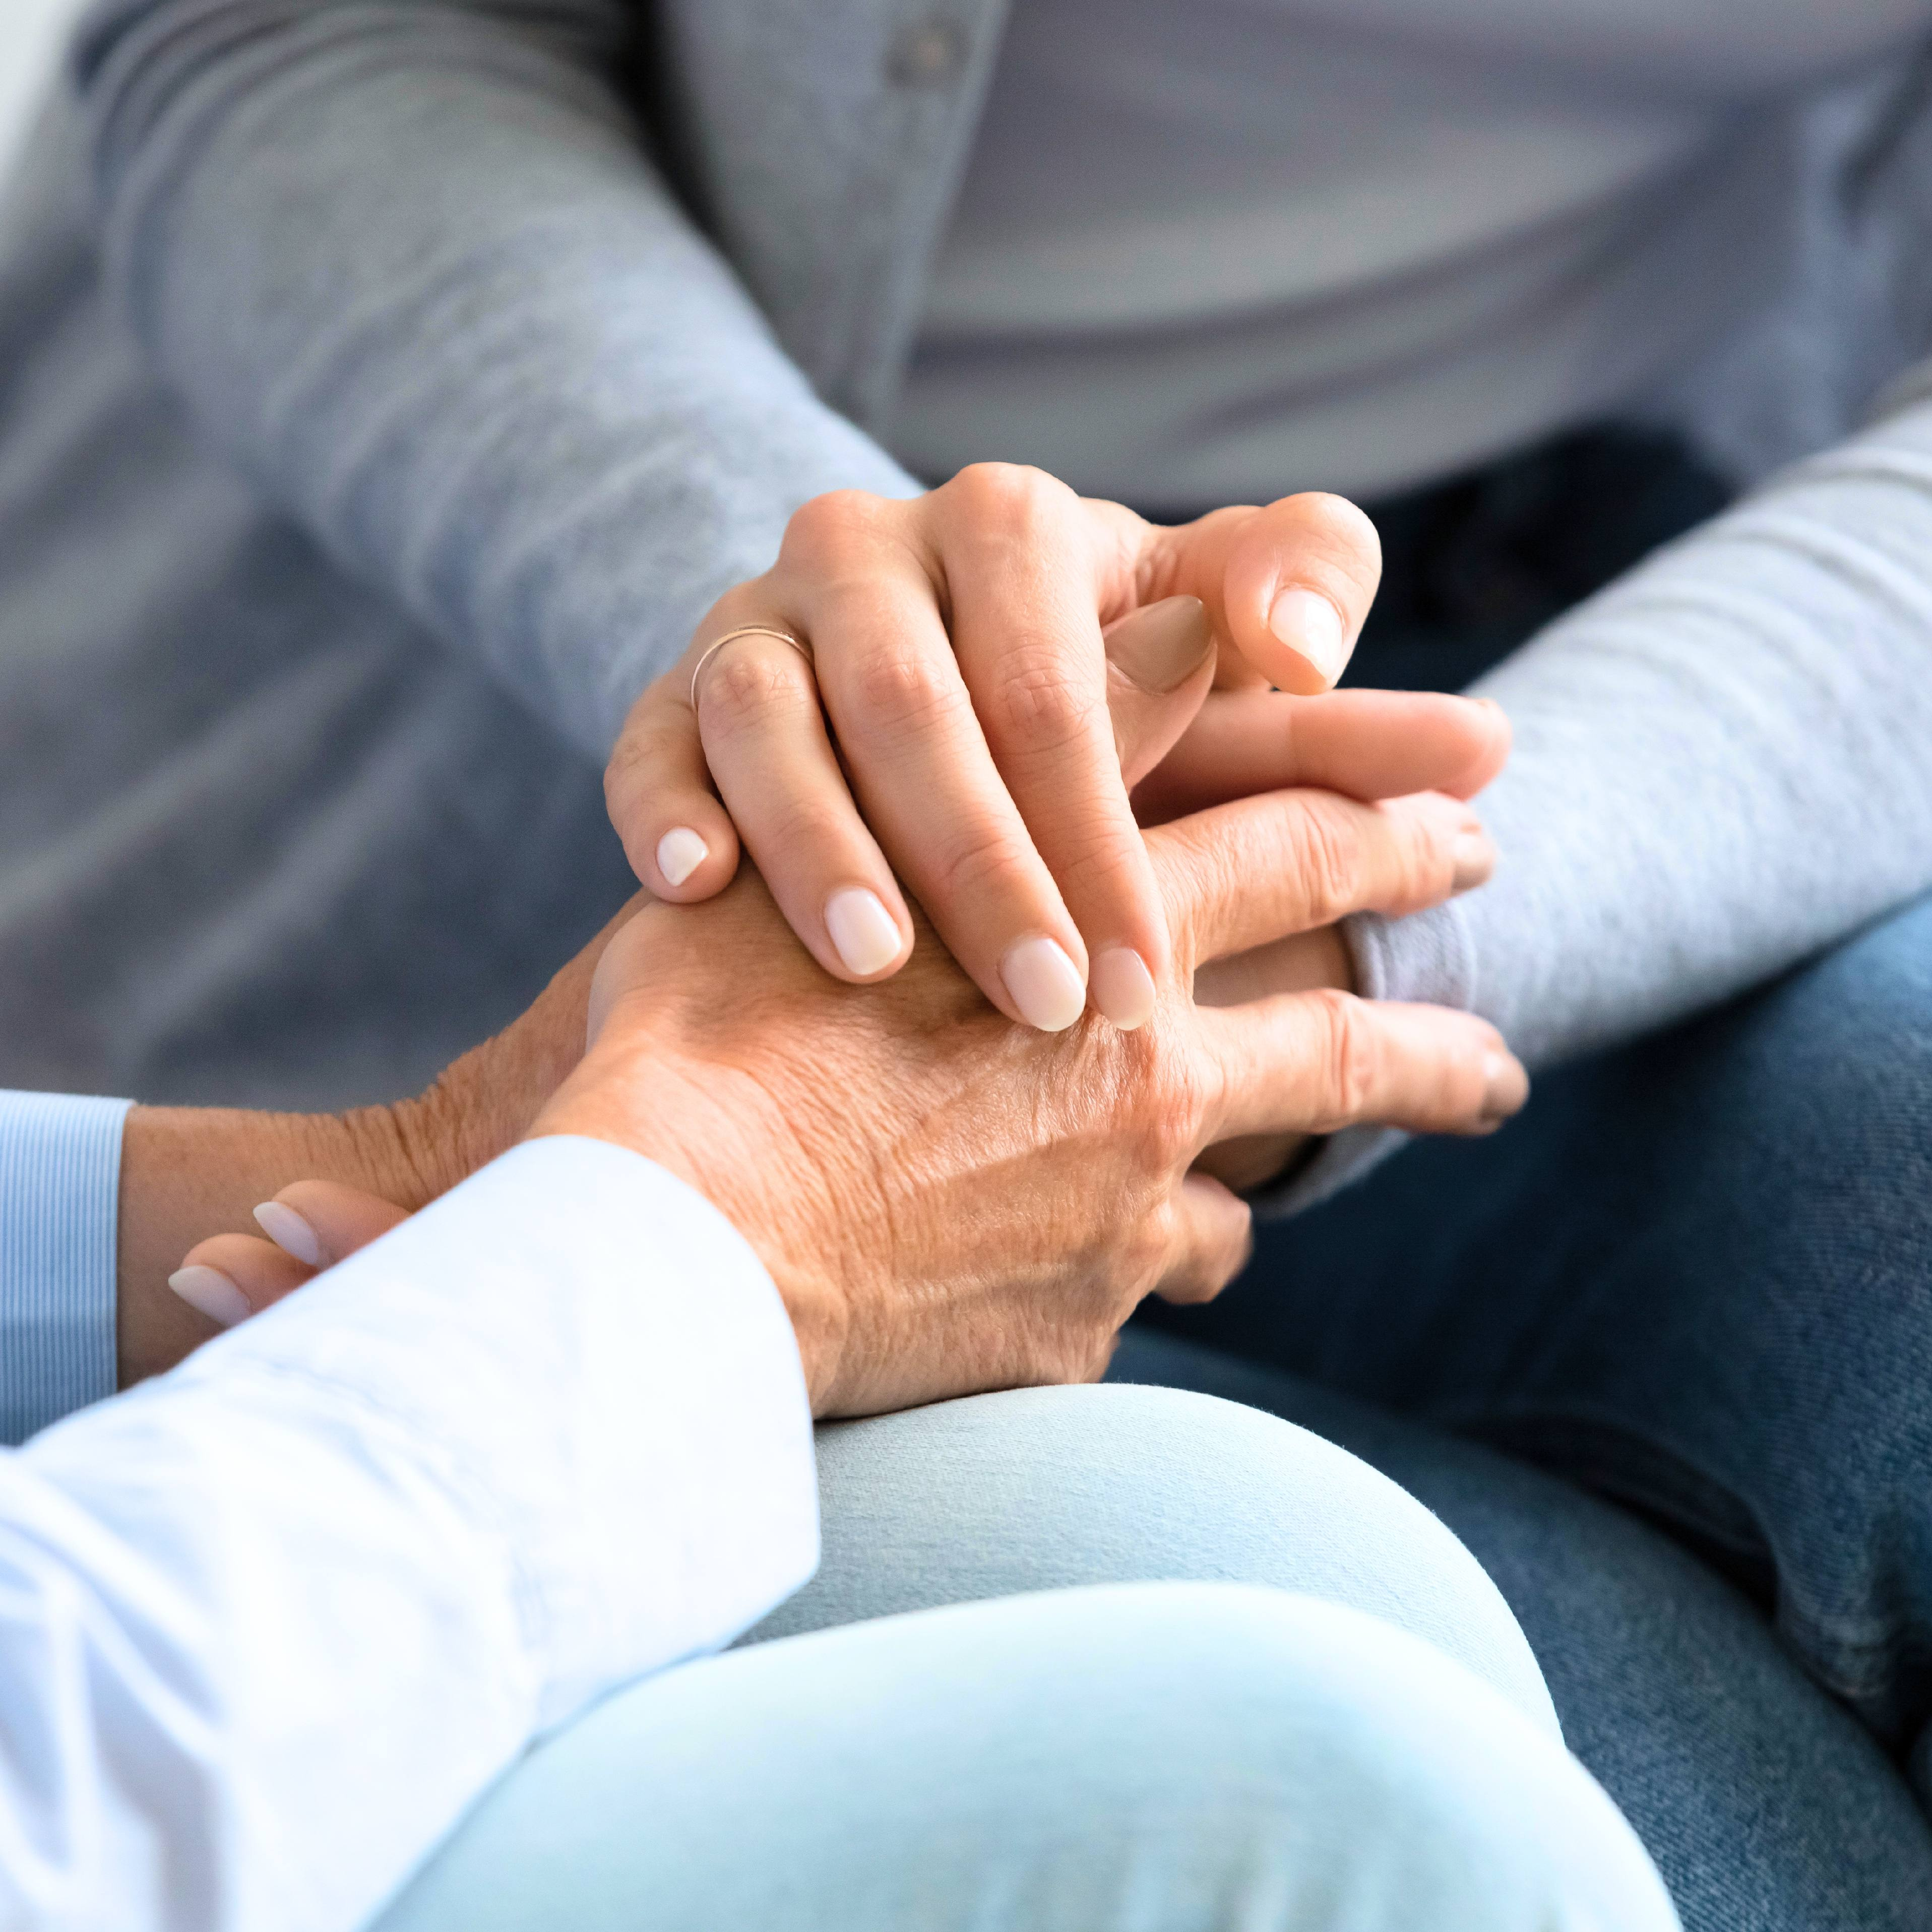 a young white woman sitting on a couch, holding the hands of an older white woman, offering compassion, sympathy and care